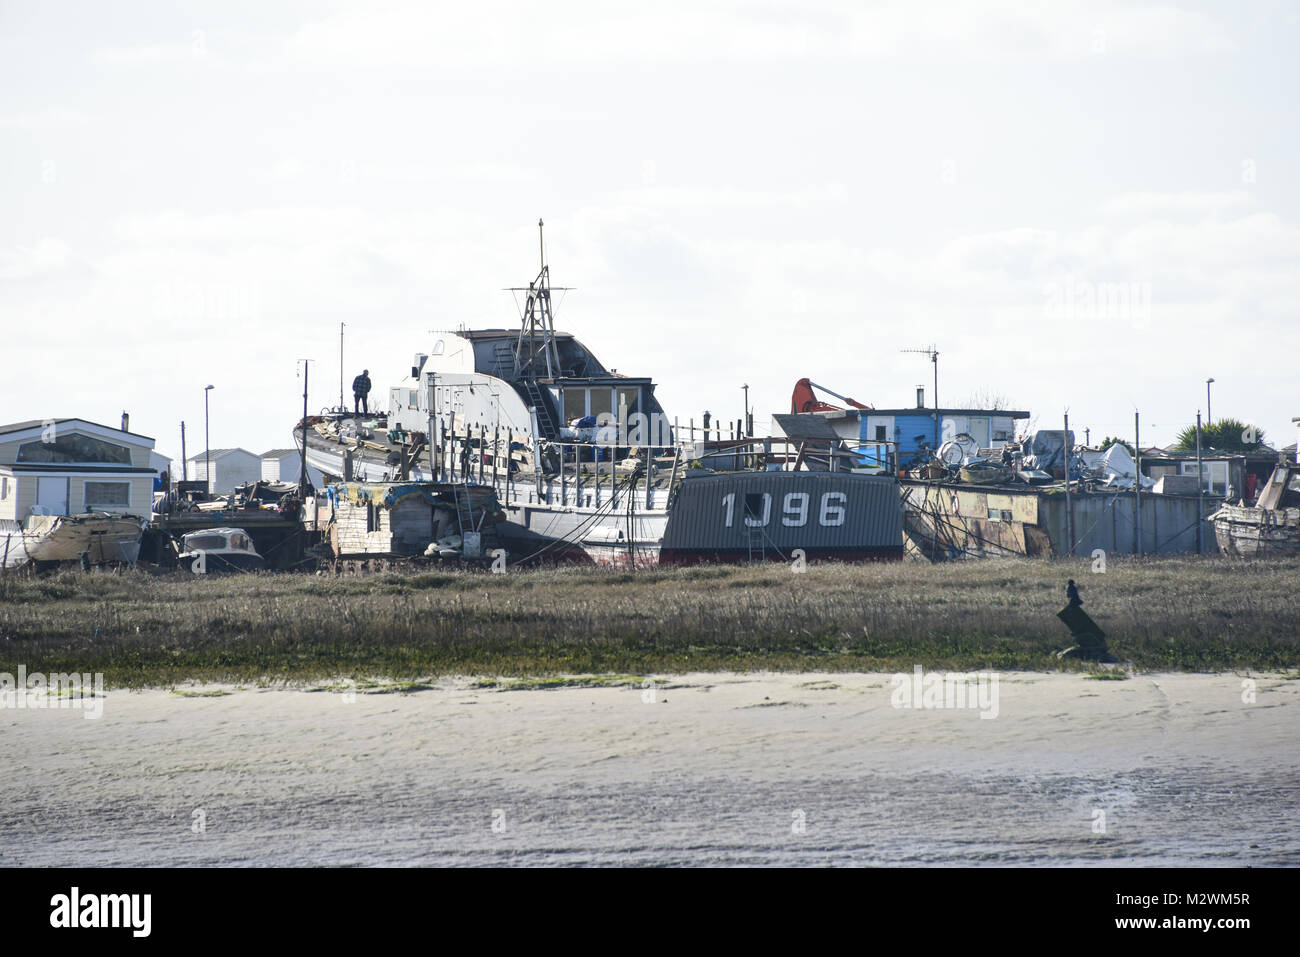 Off Grid living, houseboats, alternative lifestyle and mobile floating homes along the River Adur in Sussex - Stock Image